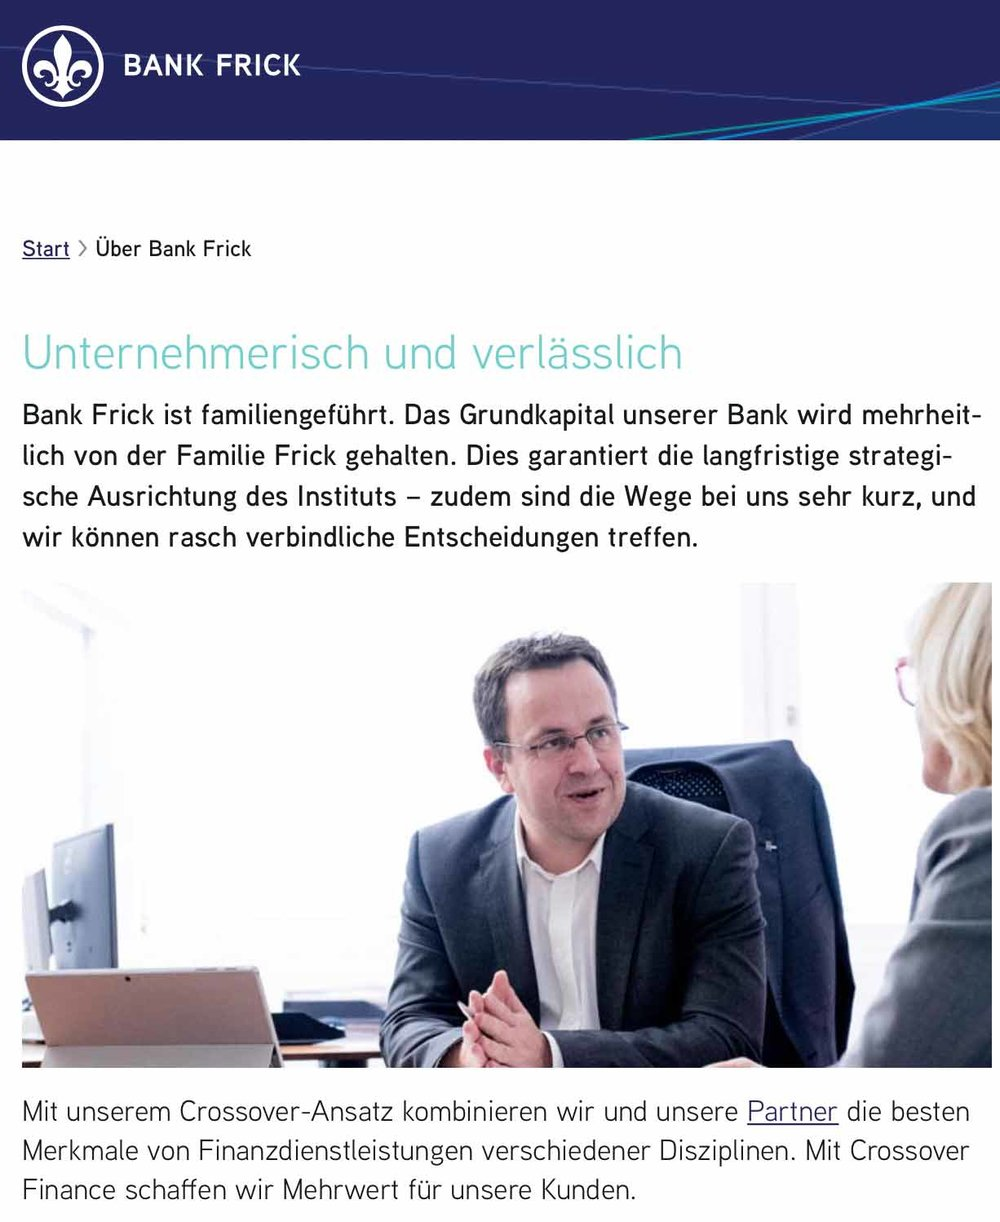 BankFrick-Website.jpg